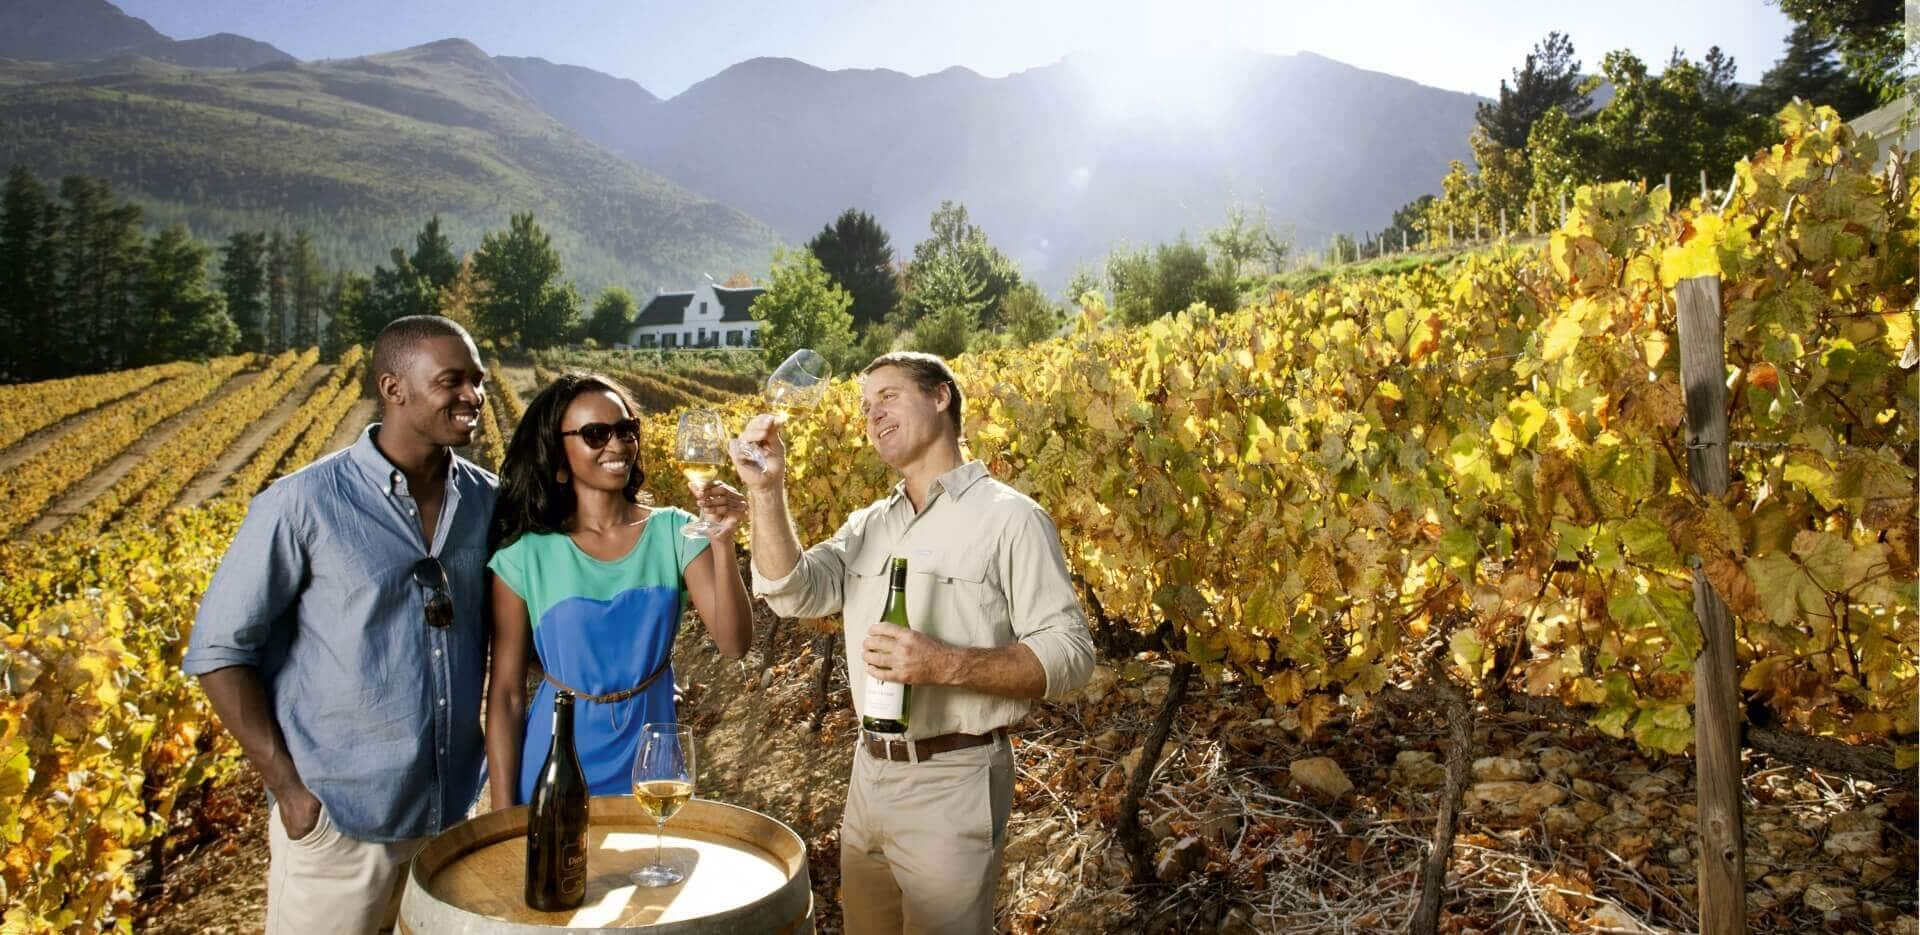 The Winelands South Africa